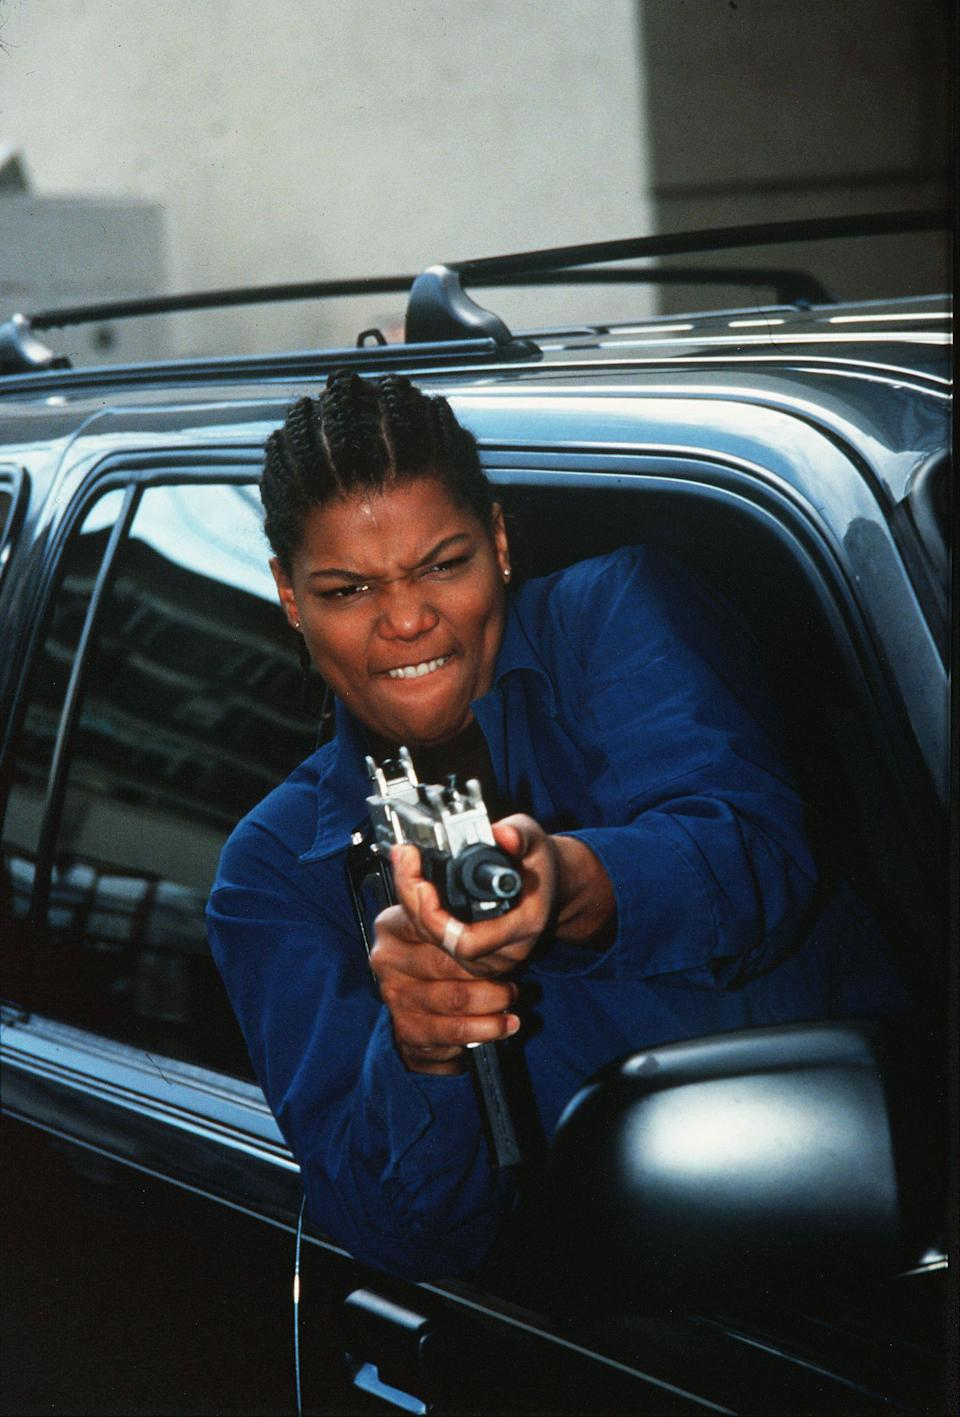 "<strong><h2>Cleo from <em>Set It Off</em></h2></strong><em>Set It Off</em> is one of the most underrated heist movies ever, and Cleo (Queen Latifah) is one of the most underrated movie characters. May she rest in peace. I say we bring her back to life for one night in October.<br><br>All you need is a worker jumpsuit, black boots, and cornrows.<span class=""copyright"">Photo: New Line/Kobal/REX/Shutterstock.</span>"